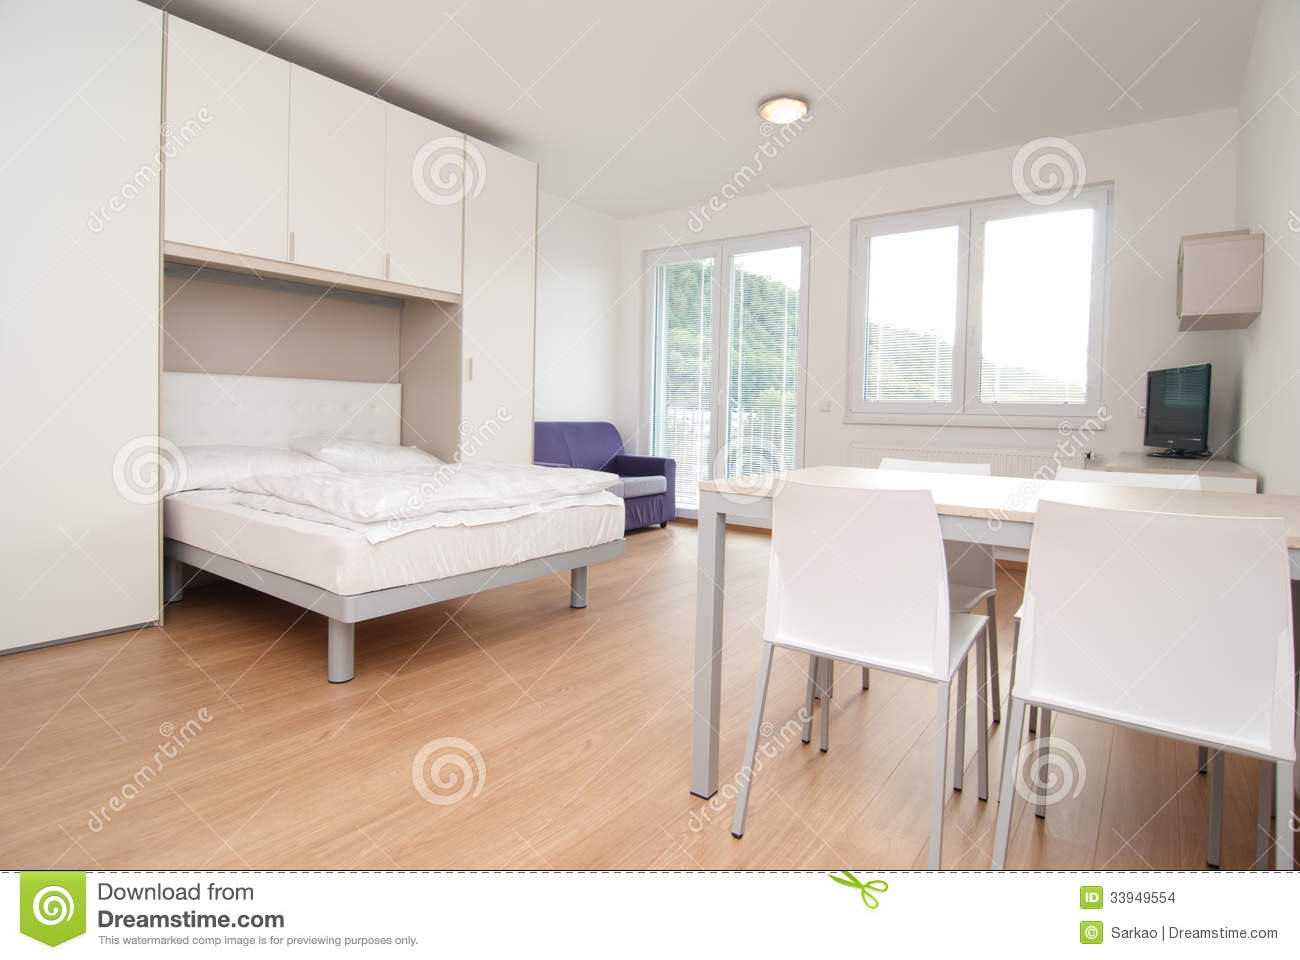 Small flat stock images image 33949554 for Small flat interior